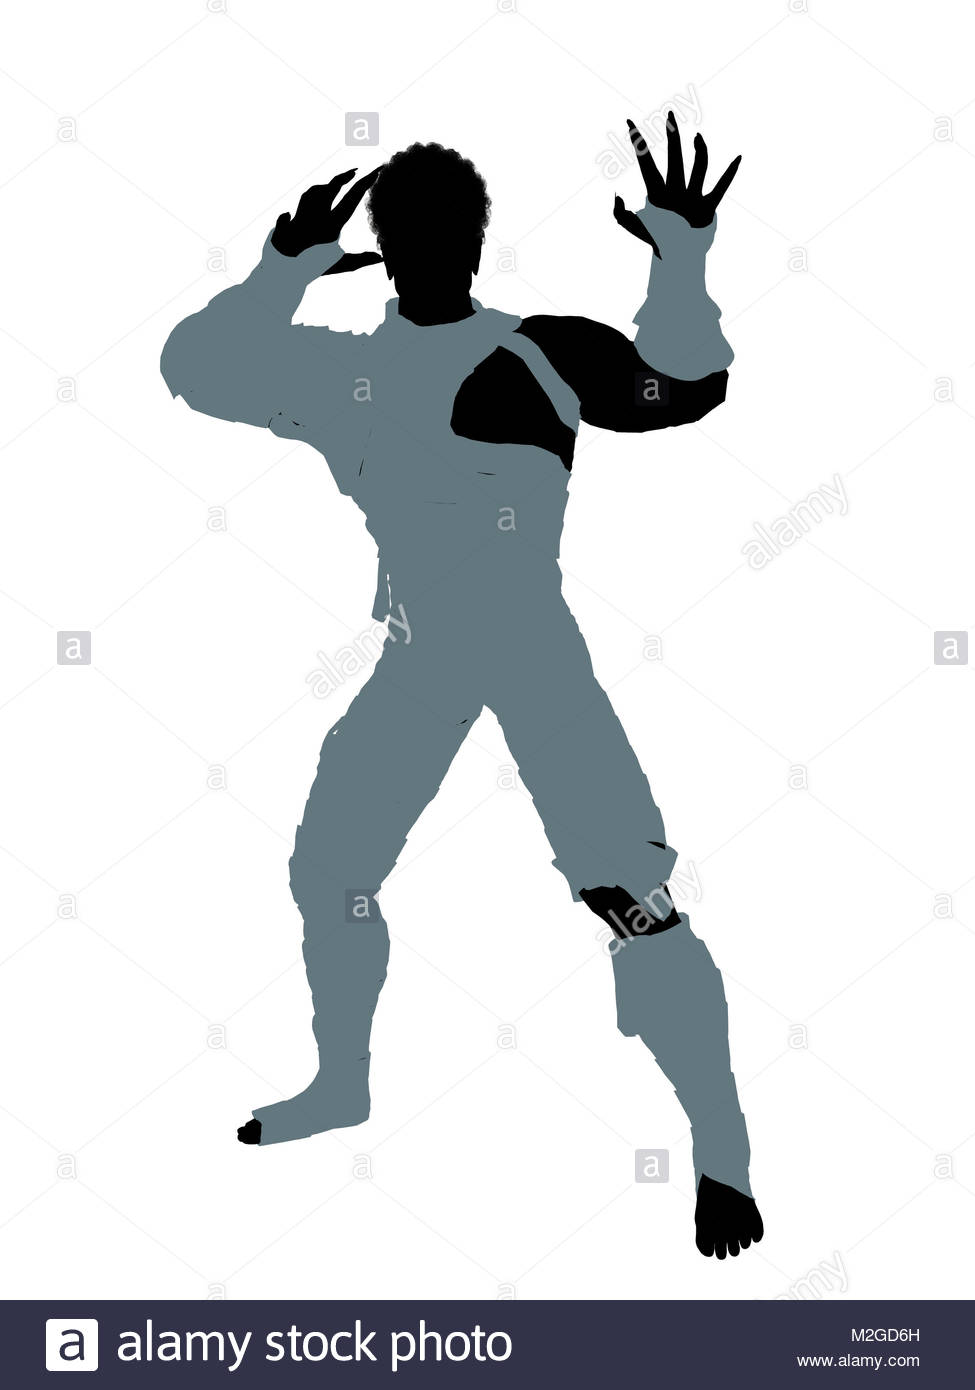 975x1390 African American Male Mummy Silhouette Illustration On A White